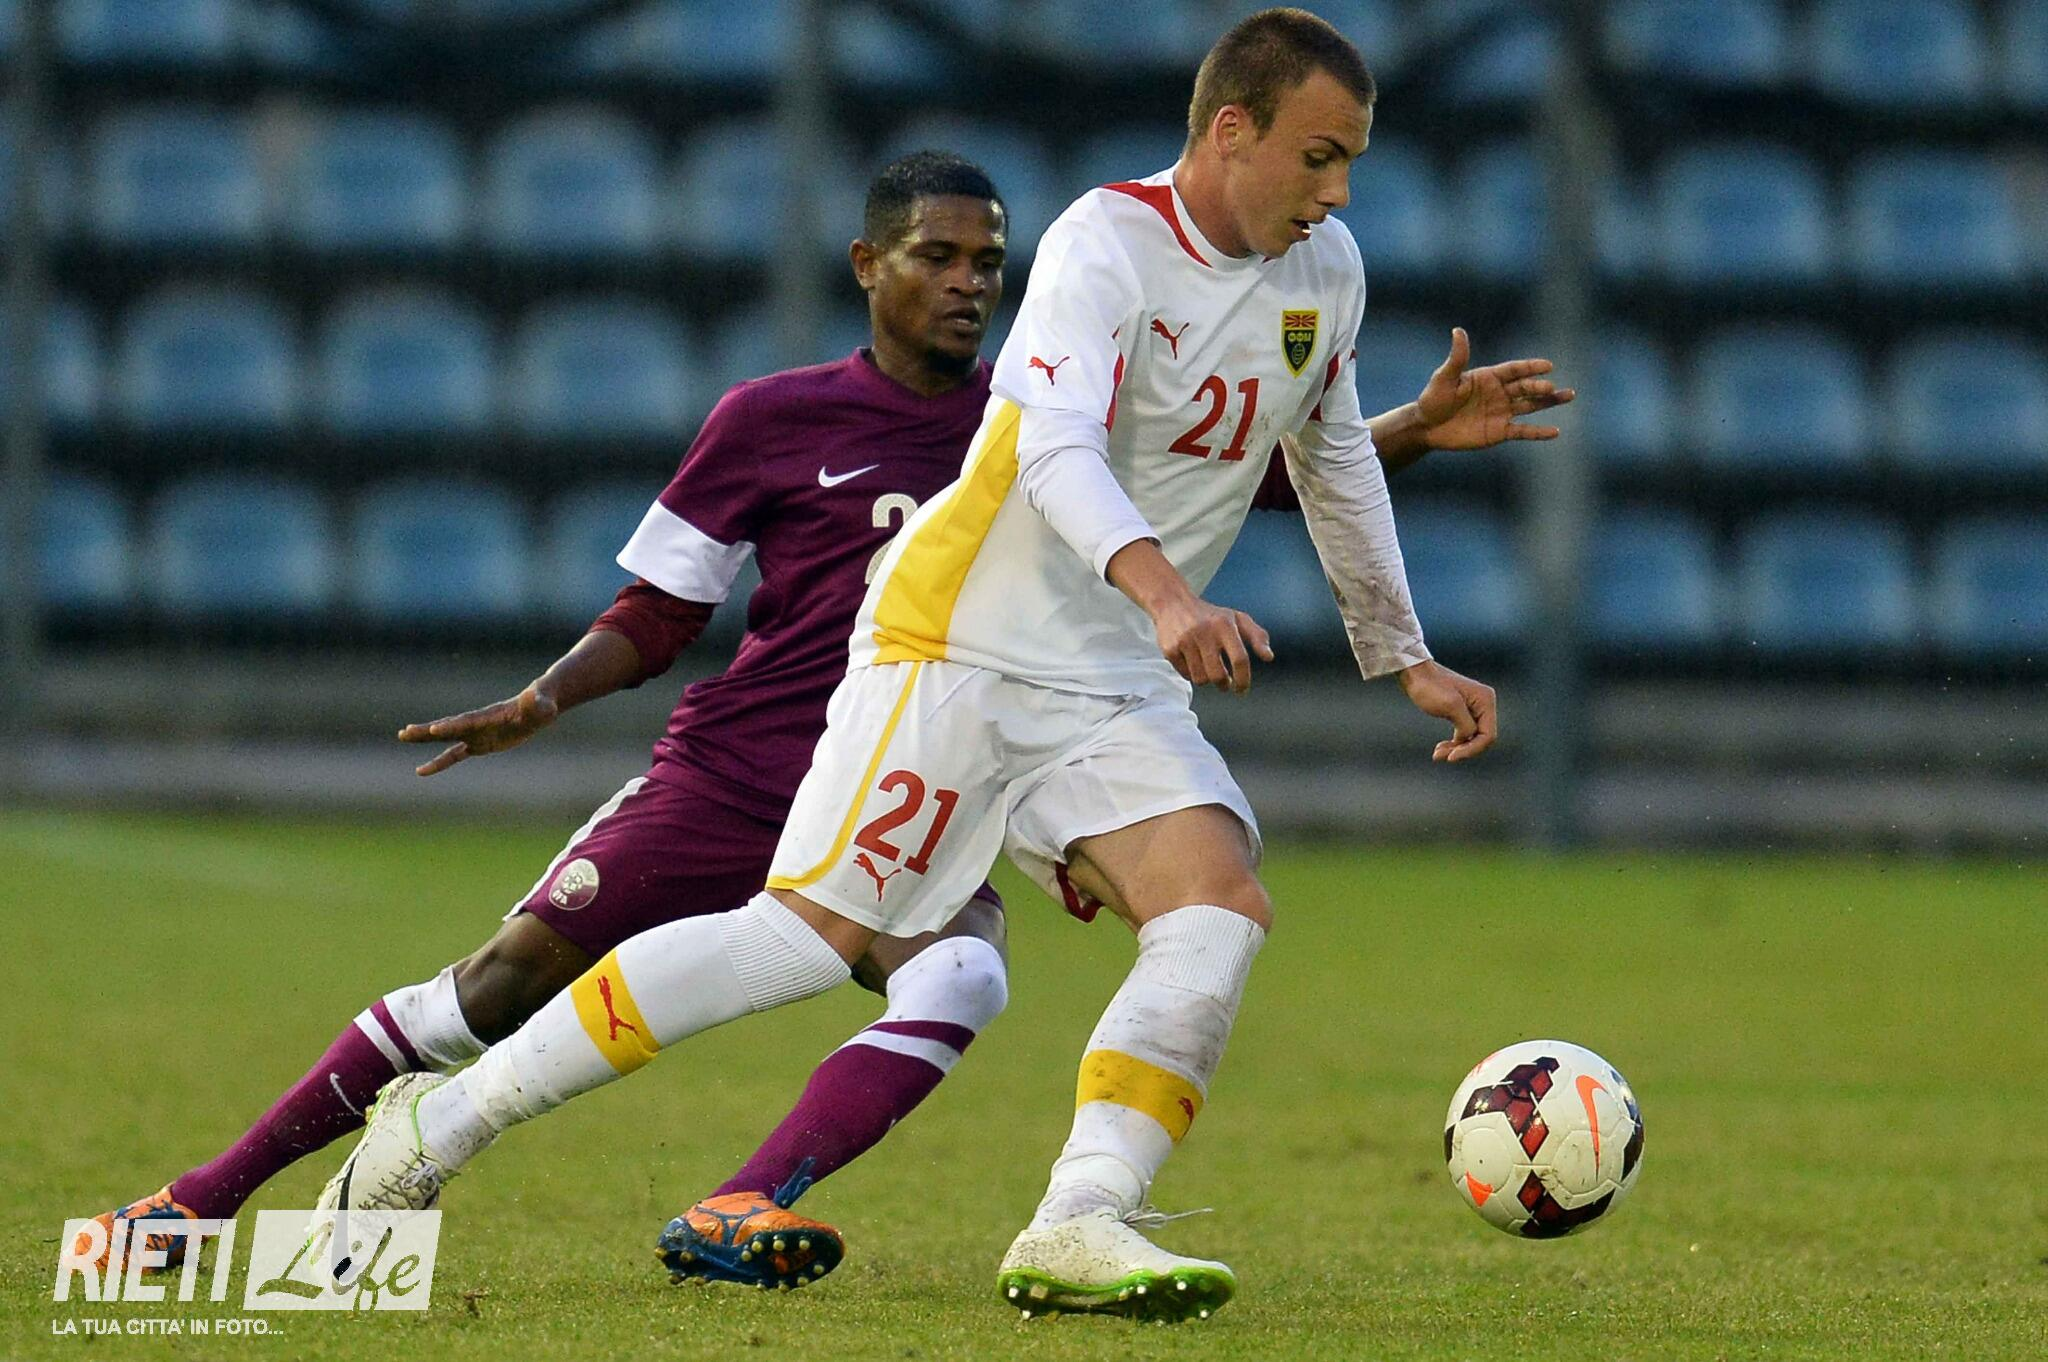 Taulant playing for Macedonia in May of 2014 against Qatar